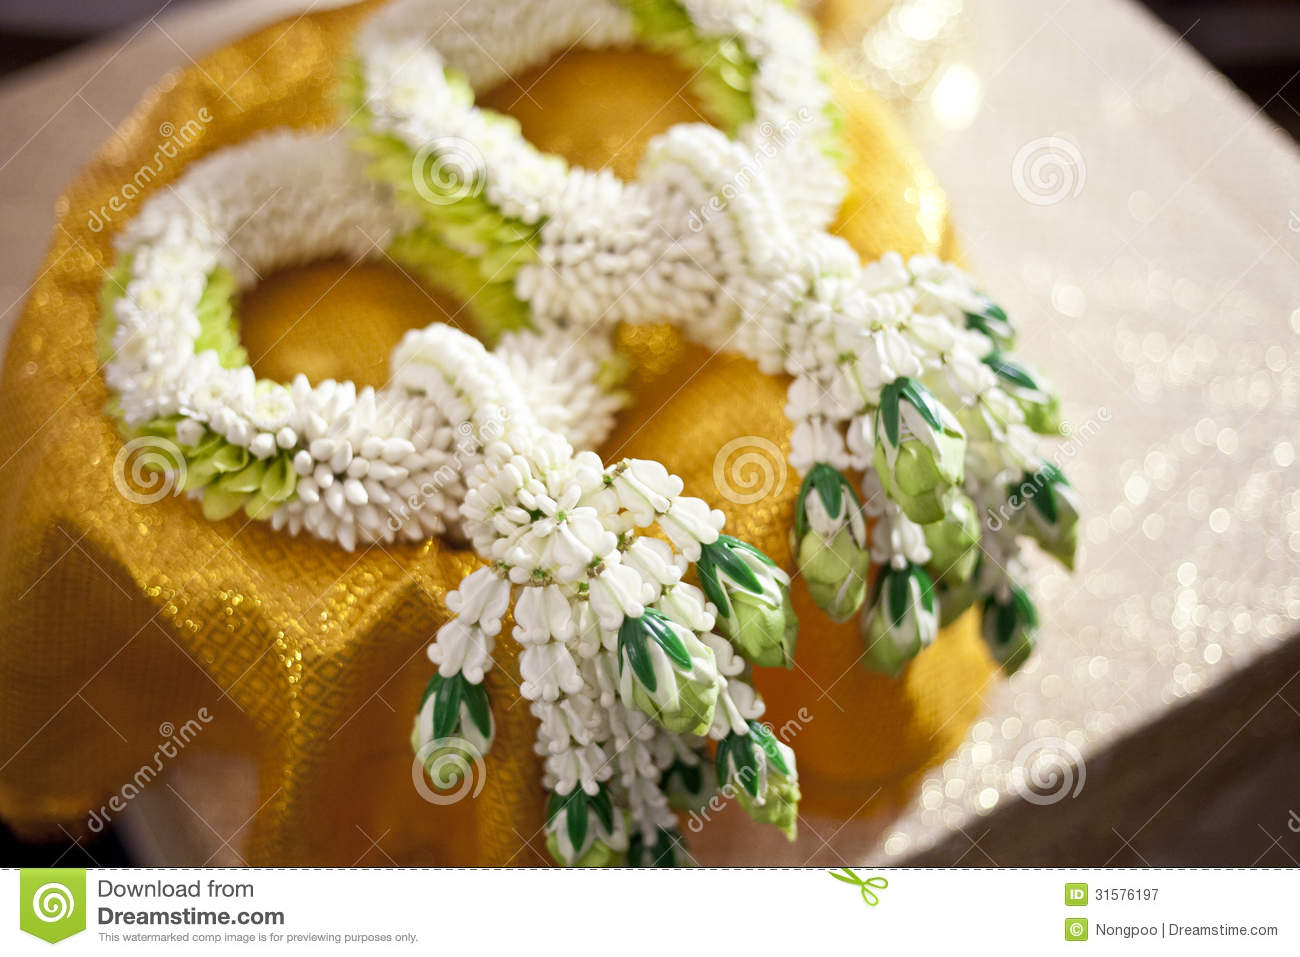 Thai Jasmin Wedding Garland For Groom And Bride, Thailand Weddin